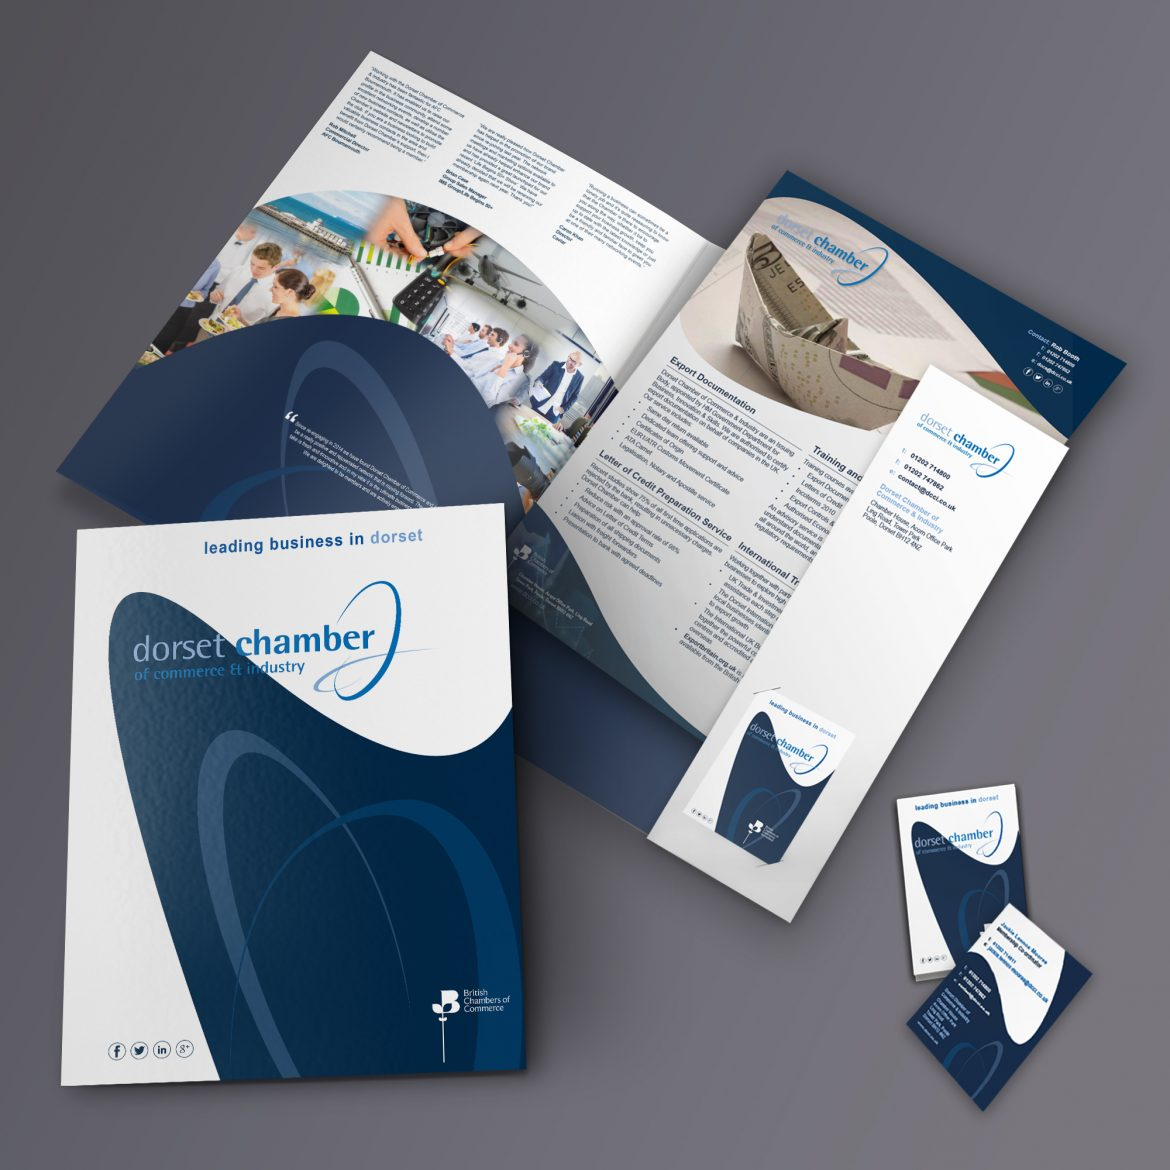 dcci stationary pack design